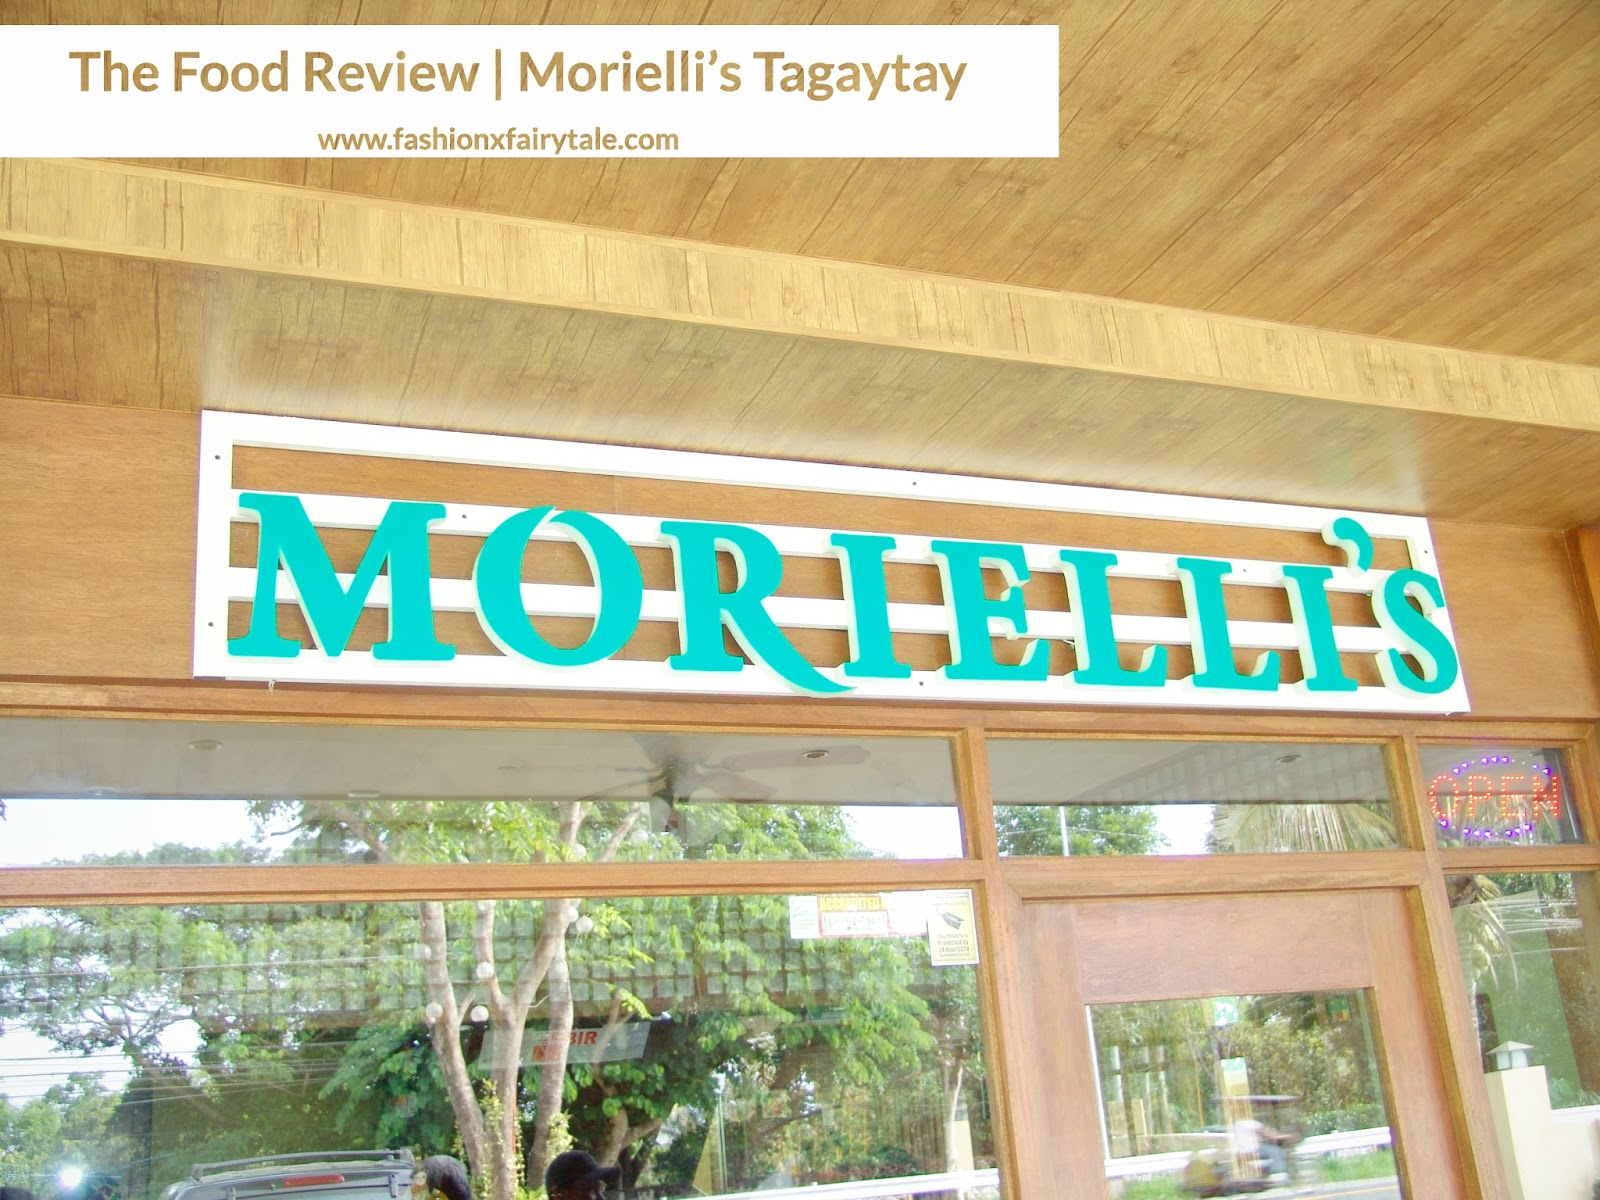 The Food Review | Morielli's Tagaytay